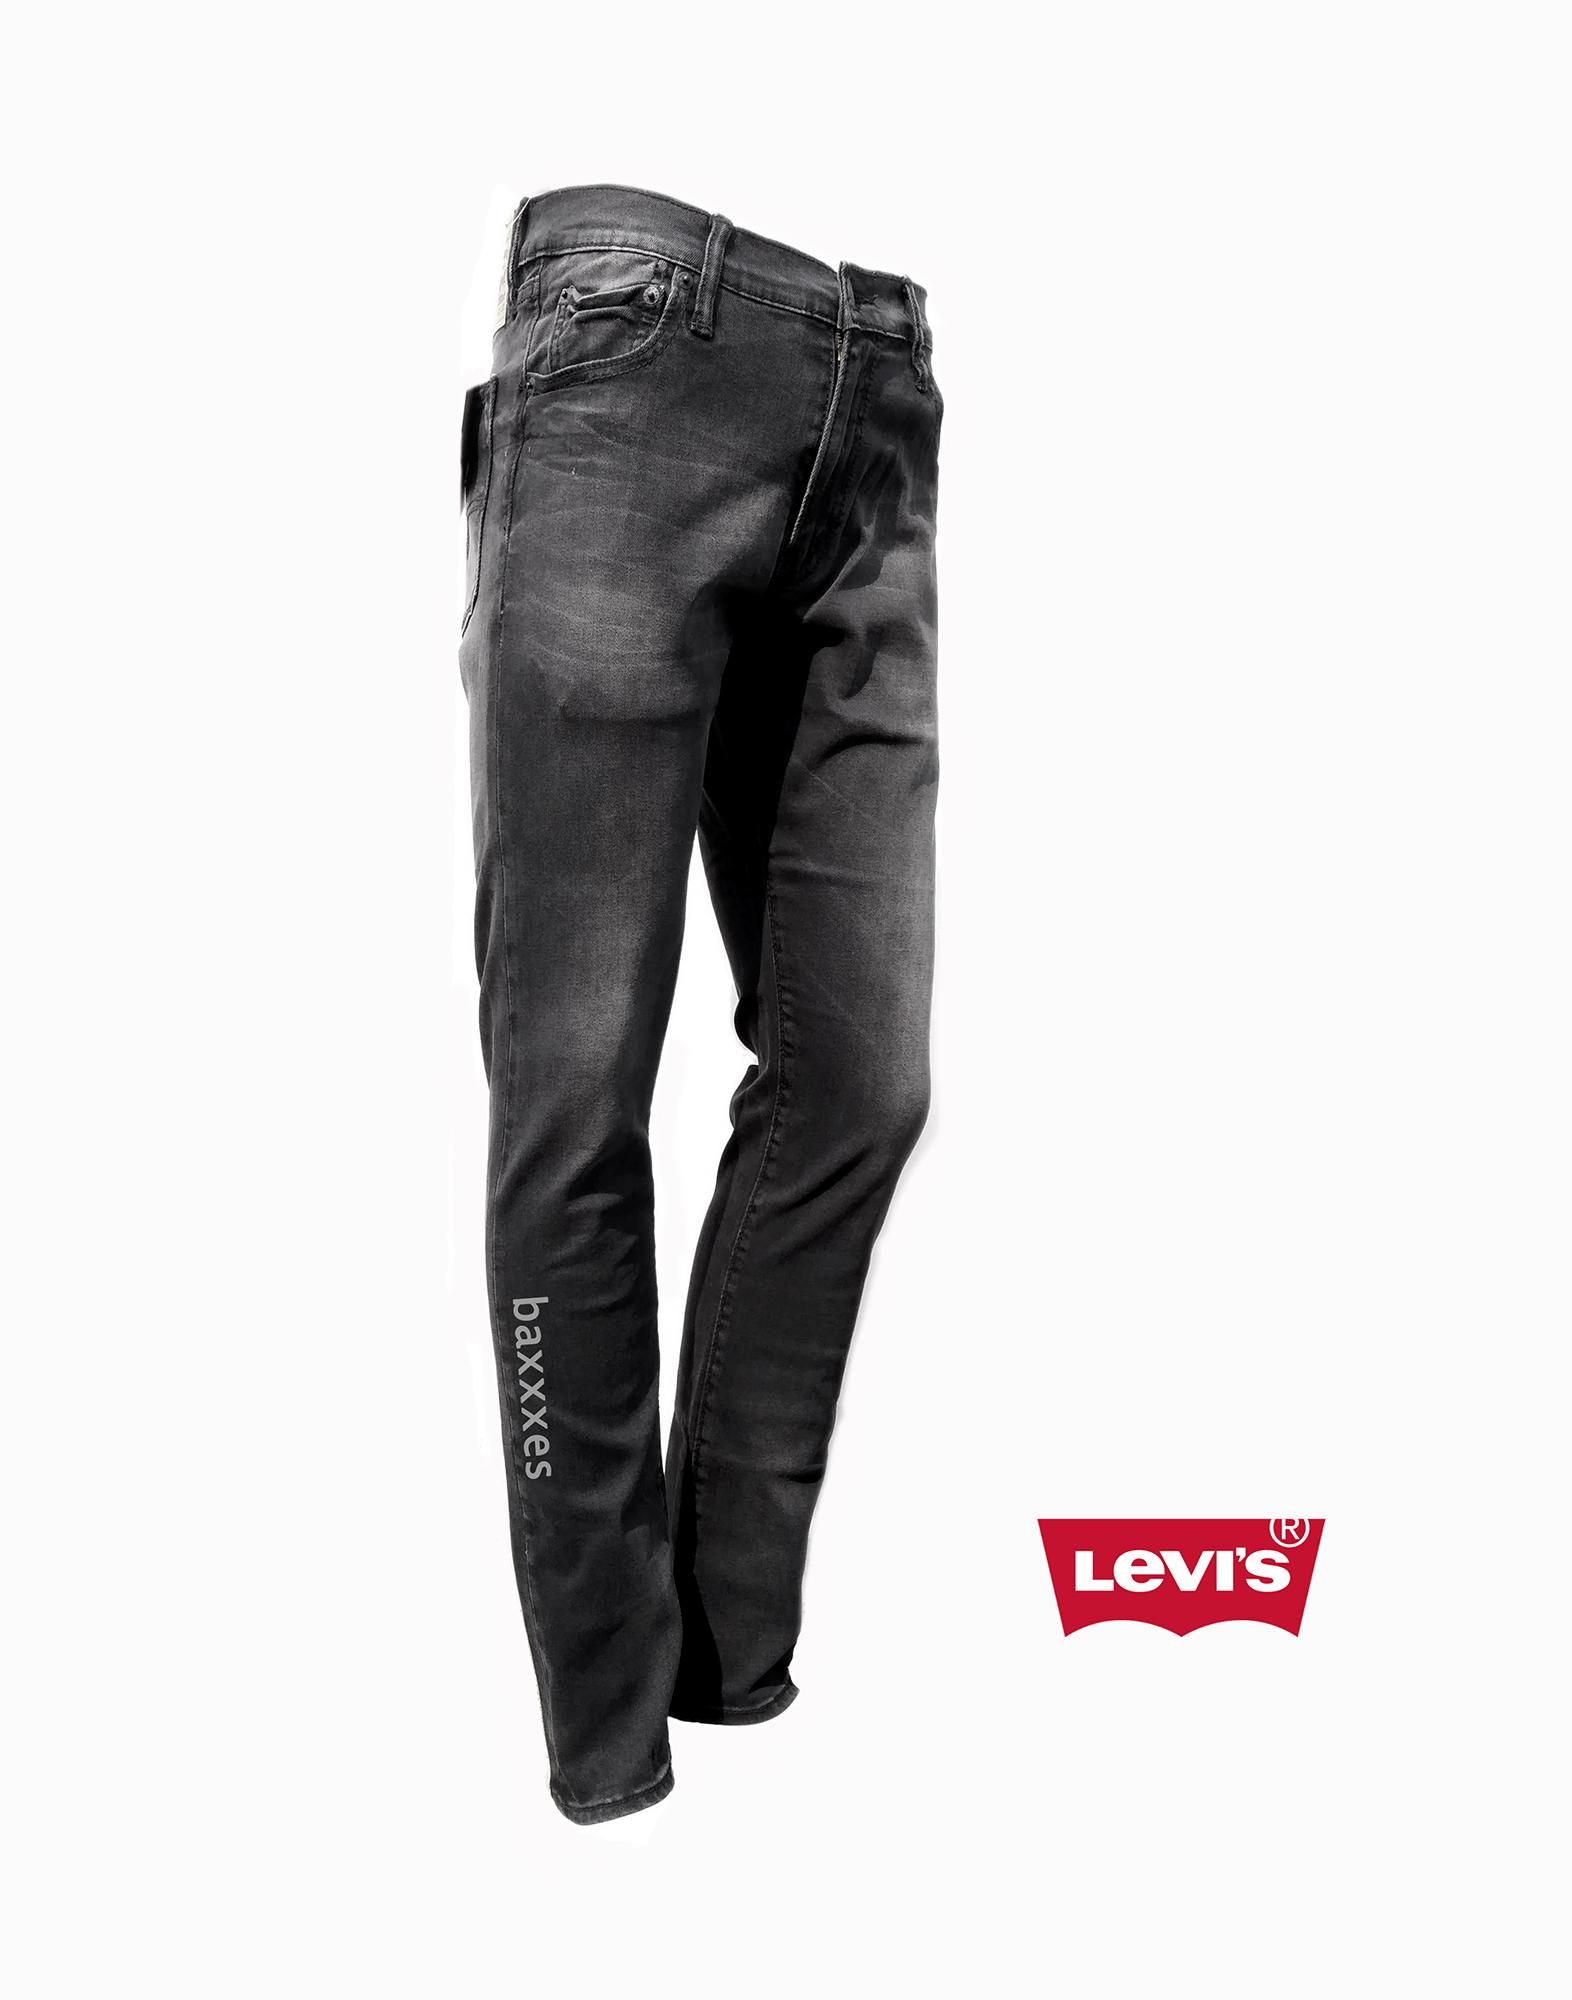 Levis Double Stitch 511 Slim Fit Laurelhurst Daftar Harga Terkini 511t Ama Canyon Dark 04511 2403 Size 38 Levi S Slimfit Made In China